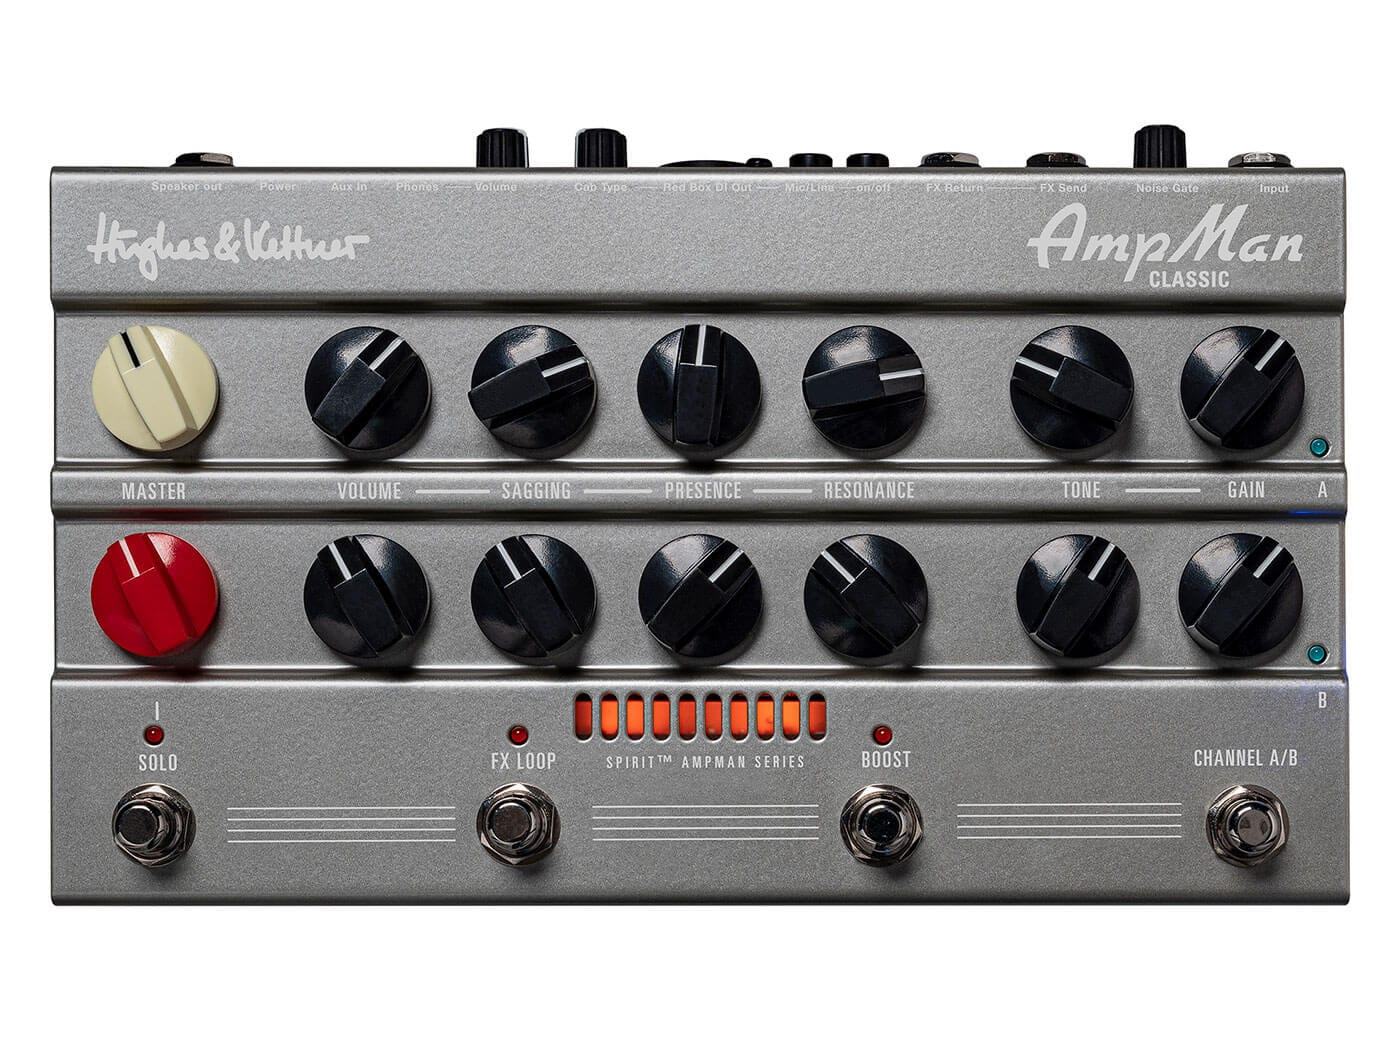 Hughes and Kettner AmpMan Classic